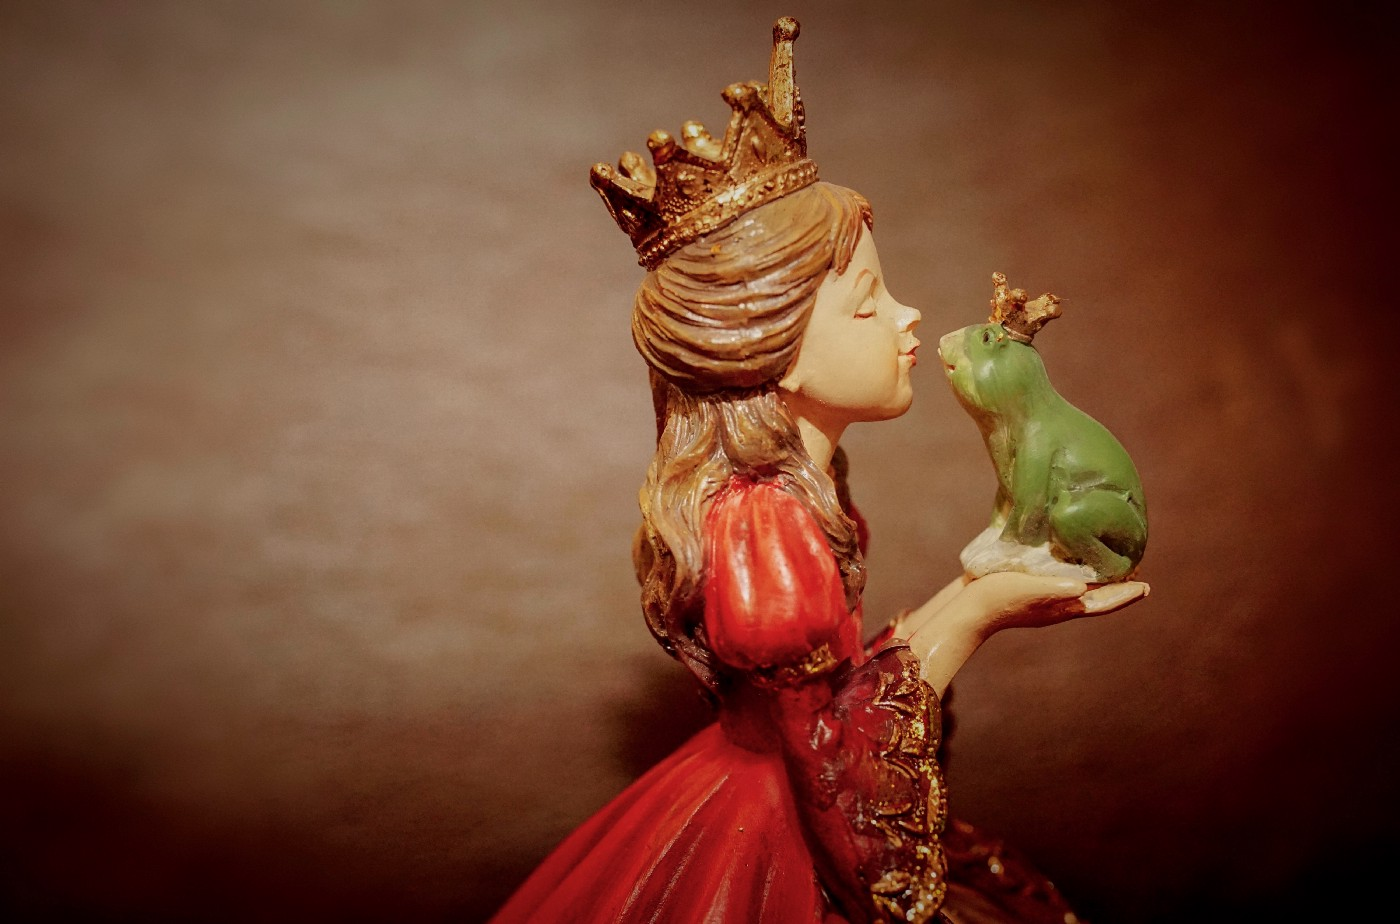 Princess and Frog (Photo by Susanne Jutzeler from Pexels)